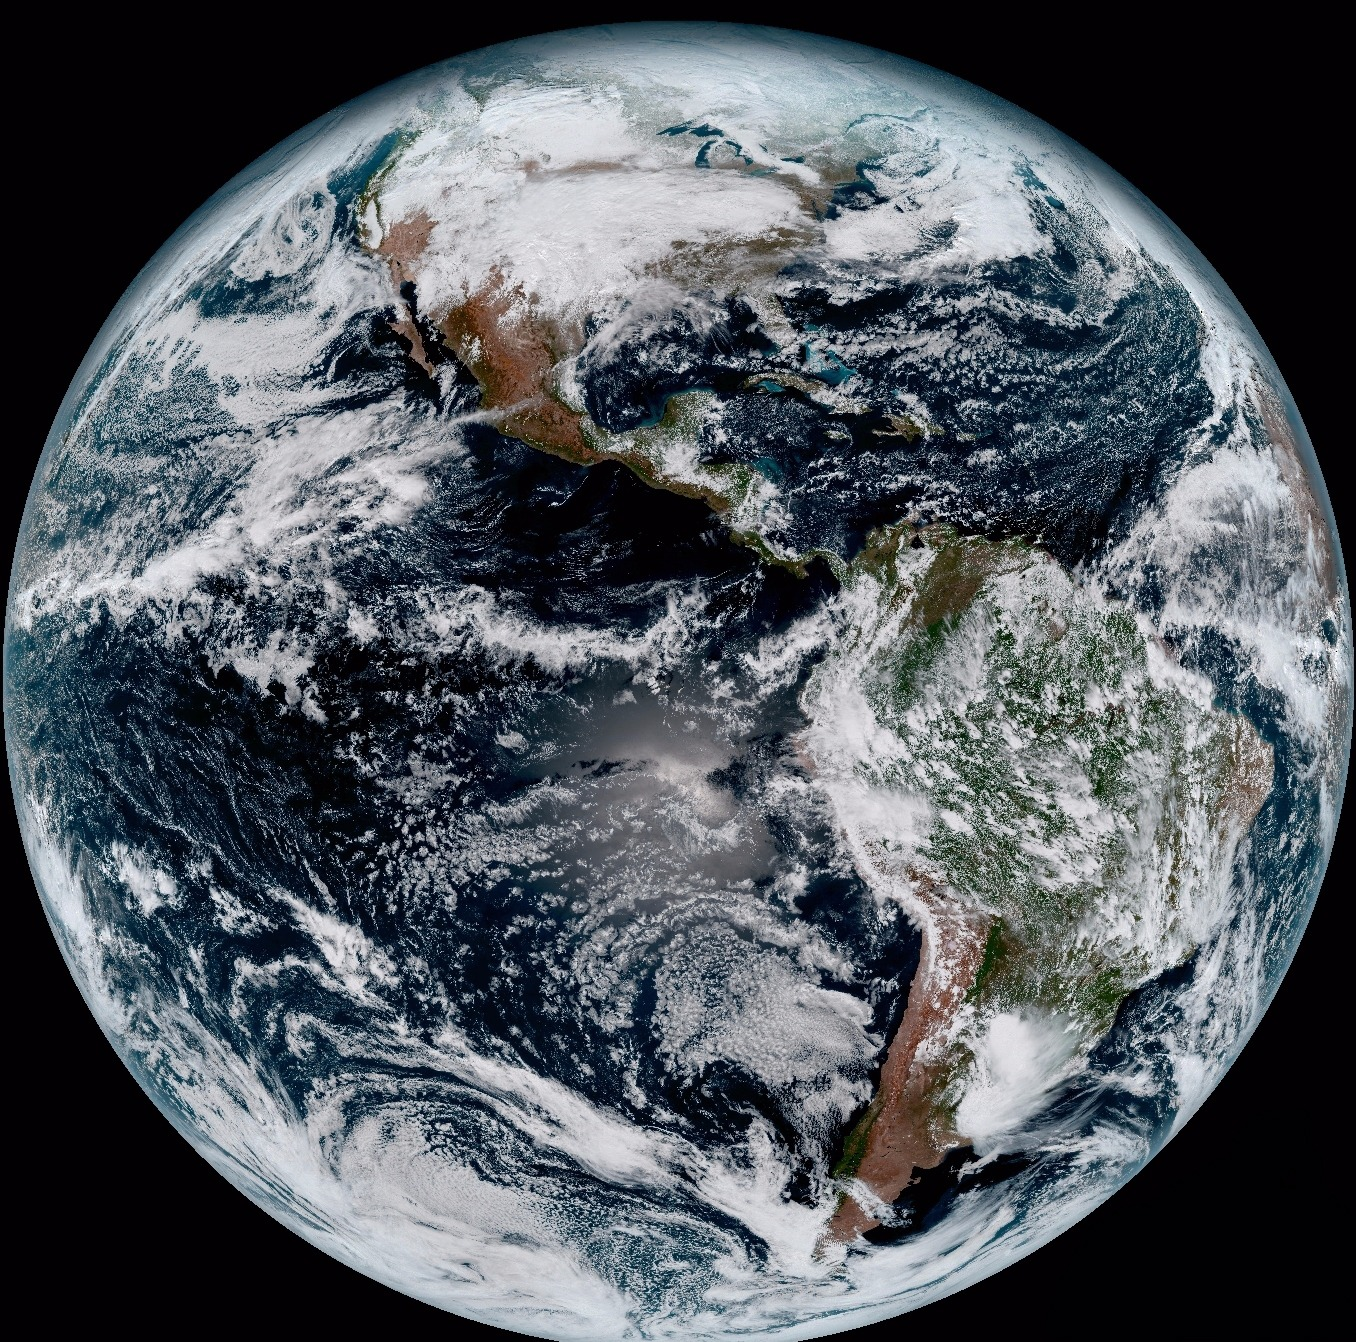 GOES Sends First Images To Earth NASA - Real life satellite view